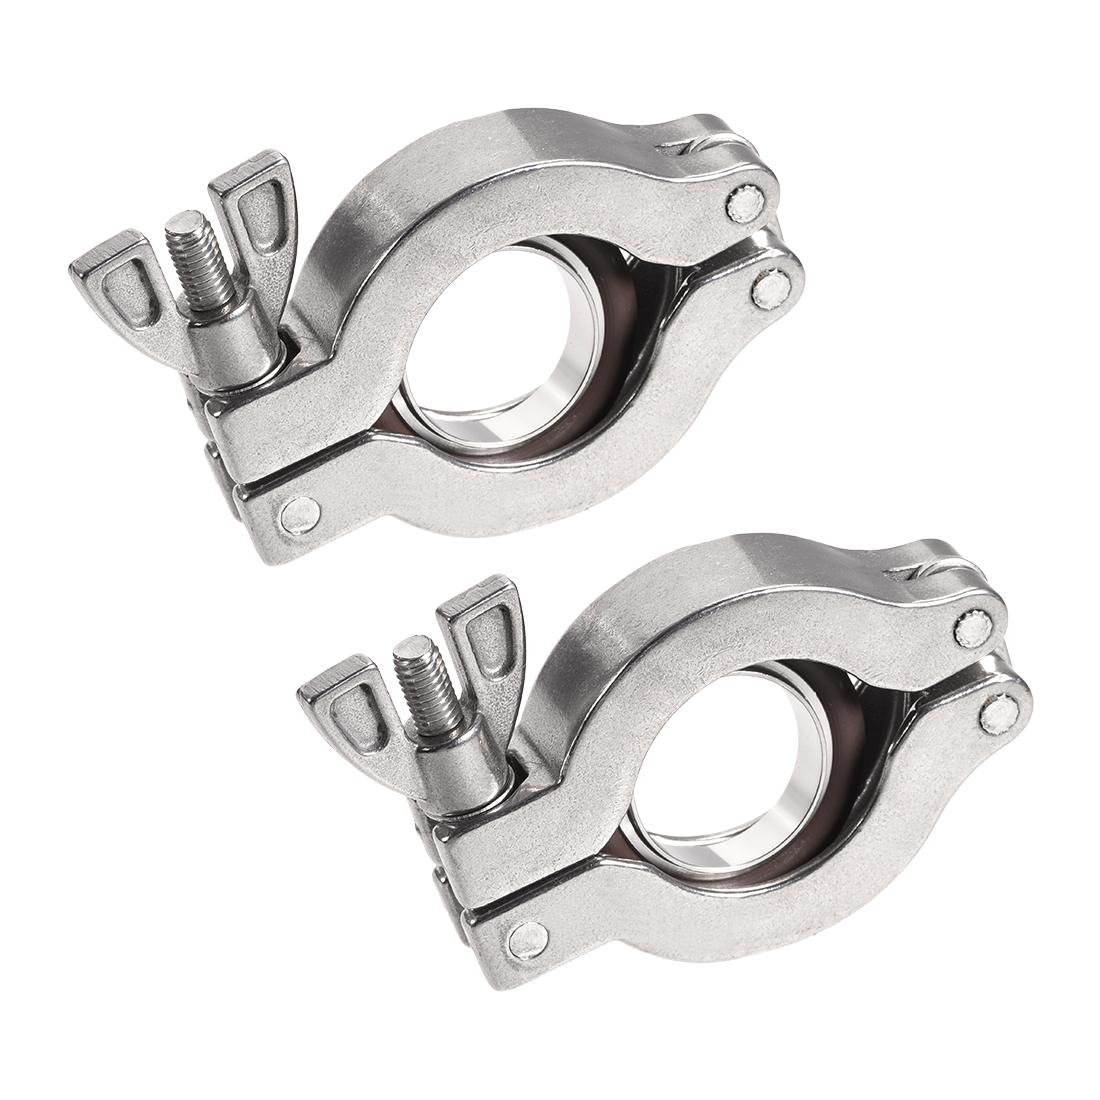 Sanitary -Clamp 53mm x 30.5mm KF25 Clamp Wing Nut with Center Ring 2 Pcs